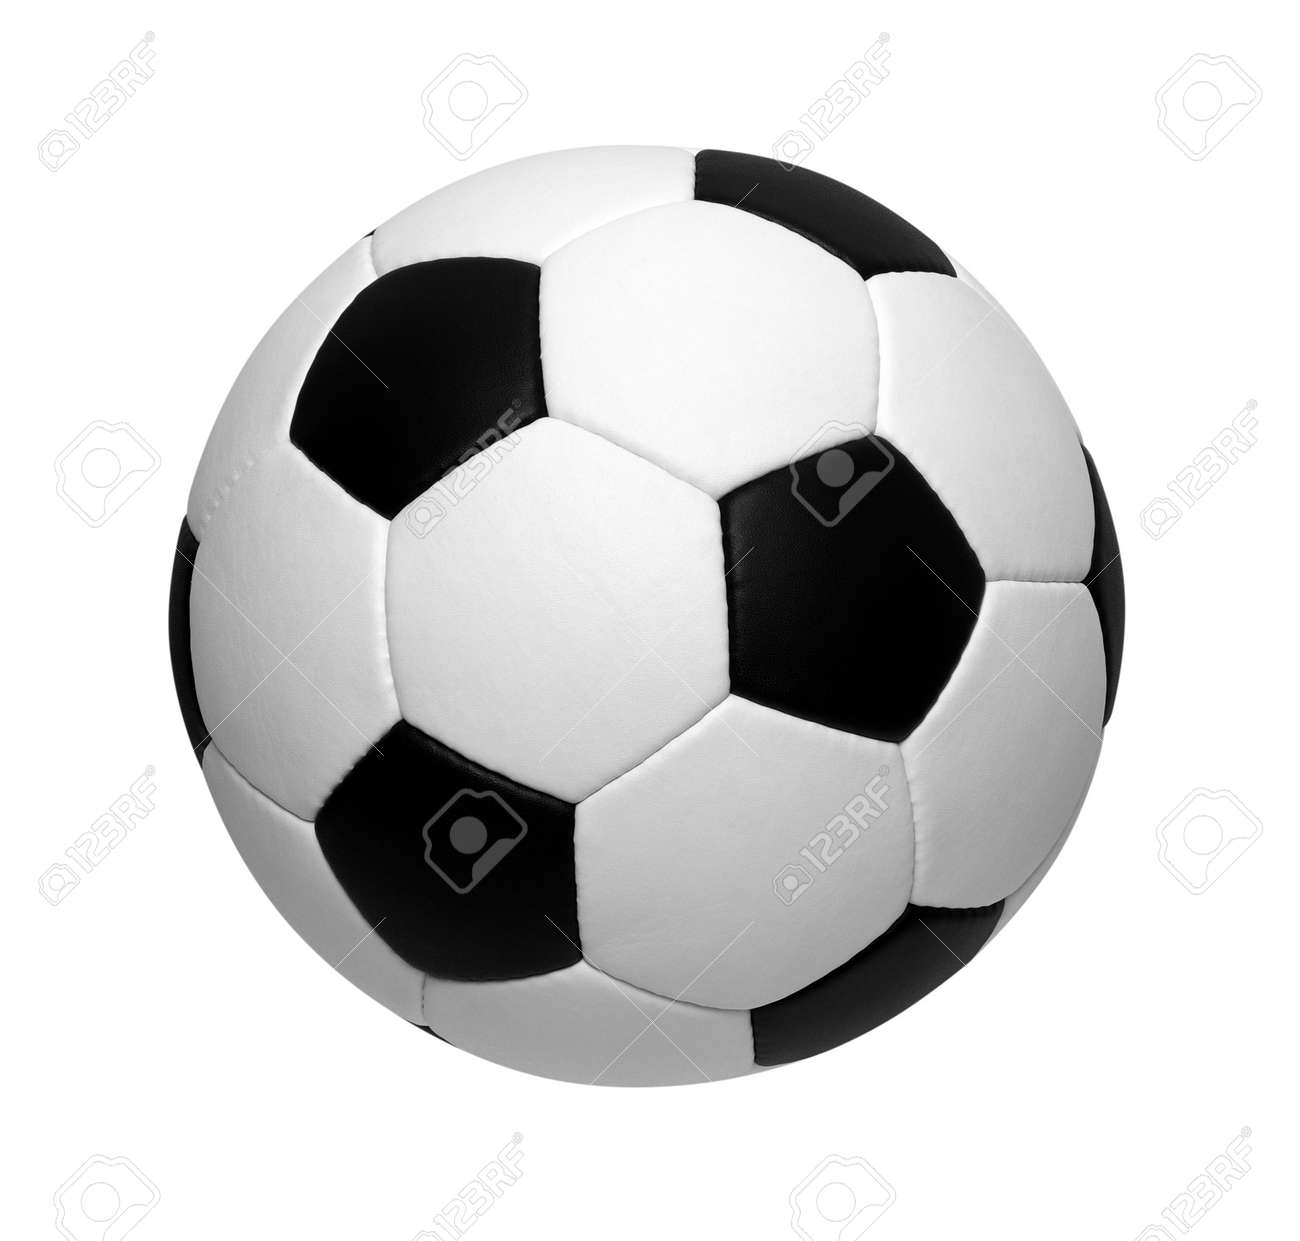 soccer ball isolated on white - 50629846